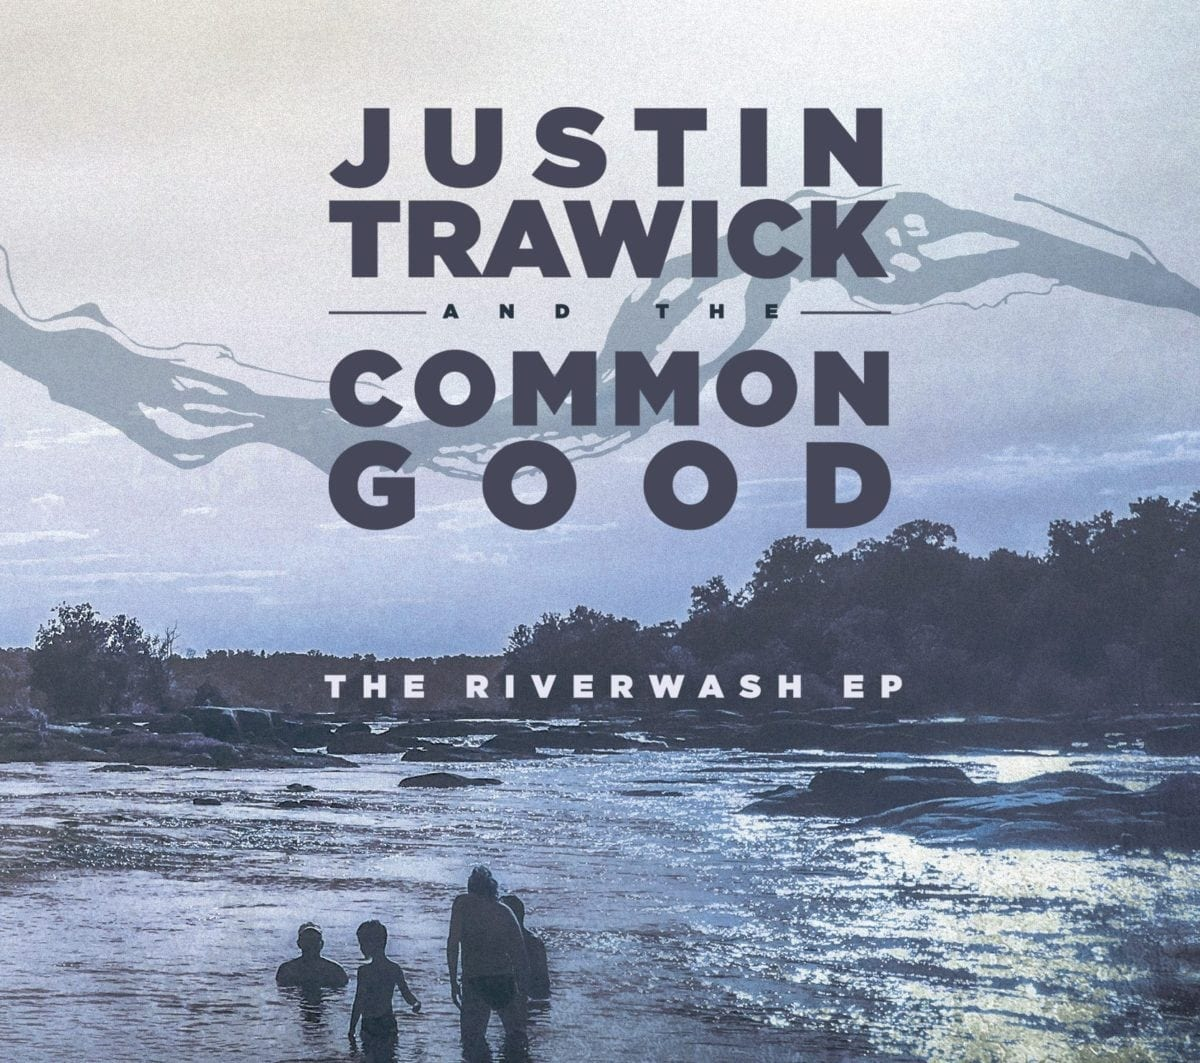 Hearing Aide Justin Trawick And The Common Good The Riverwash Ep